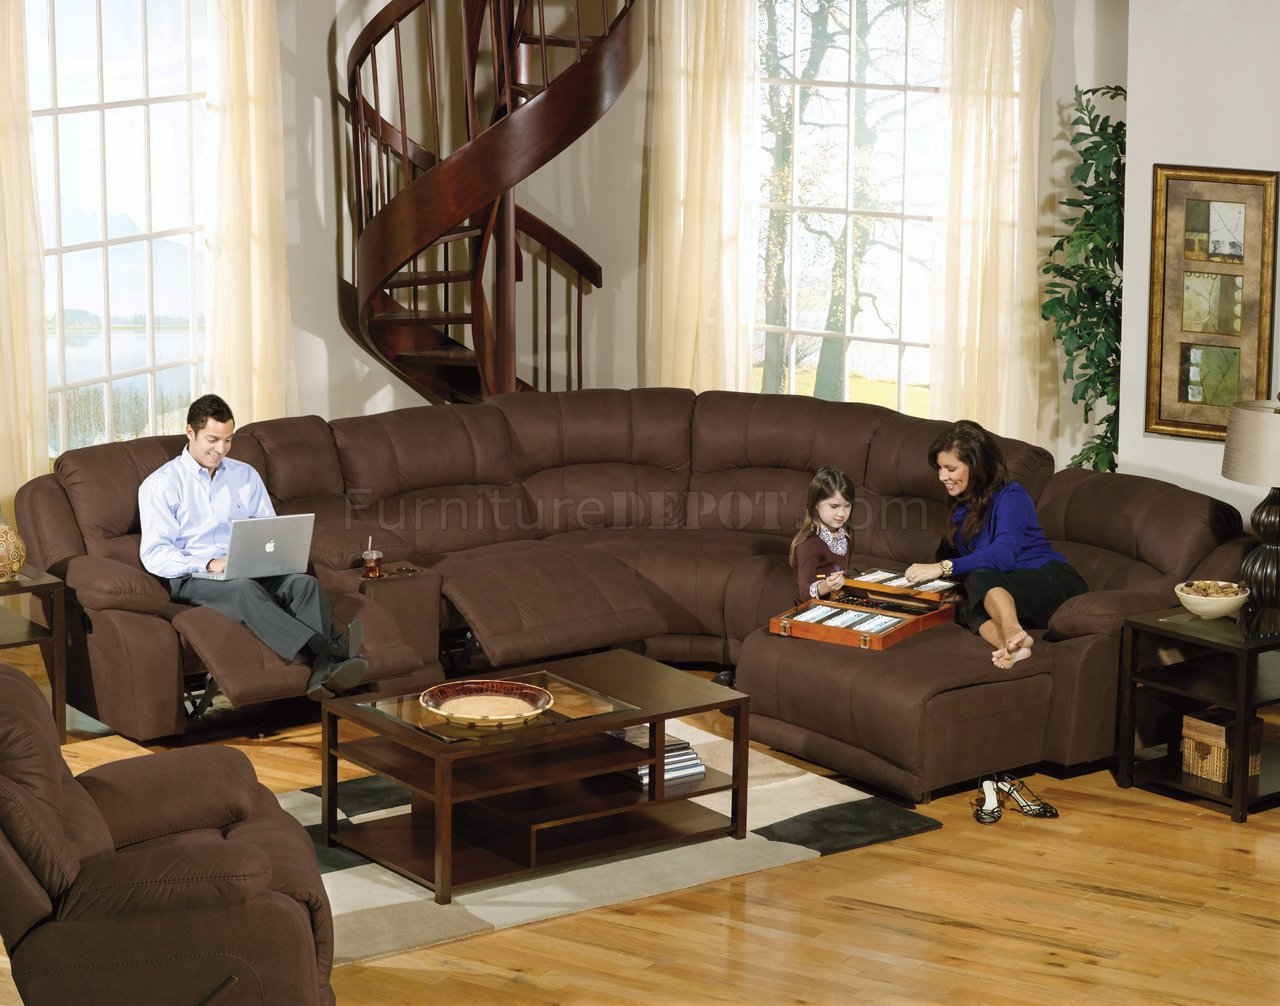 Espresso Fabric Compass Modular Sectional Sofa wOptions